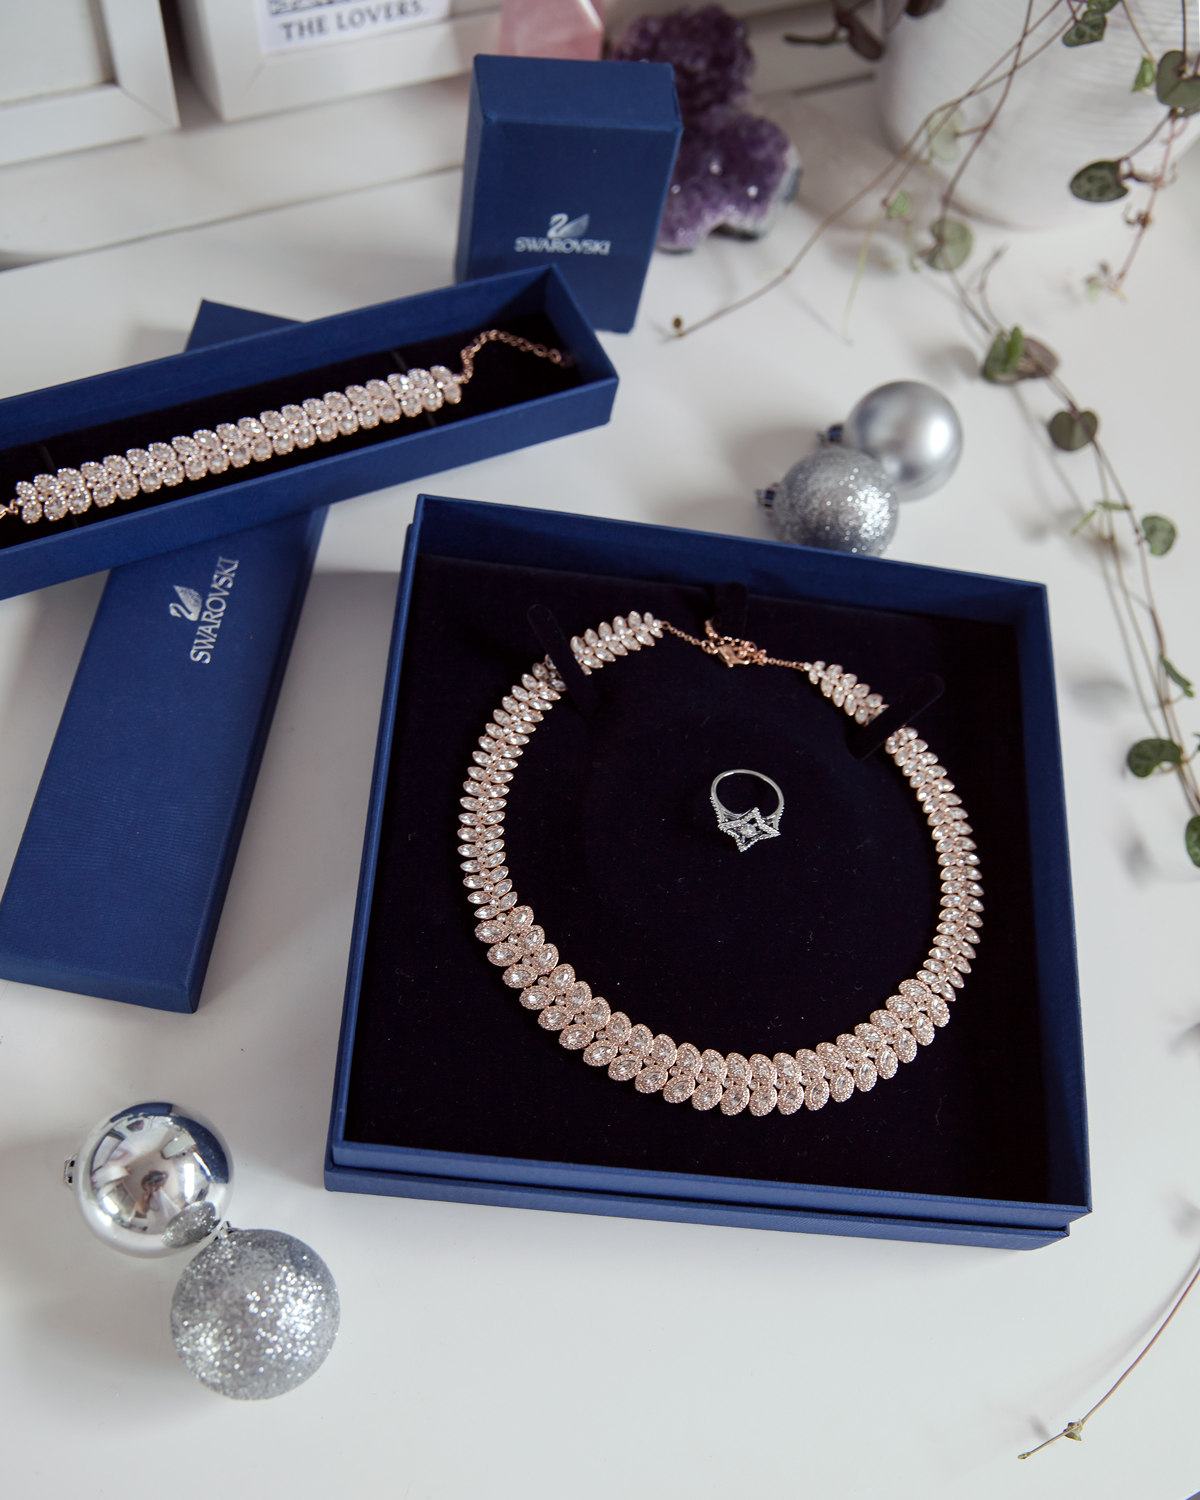 Swarovski holiday collection